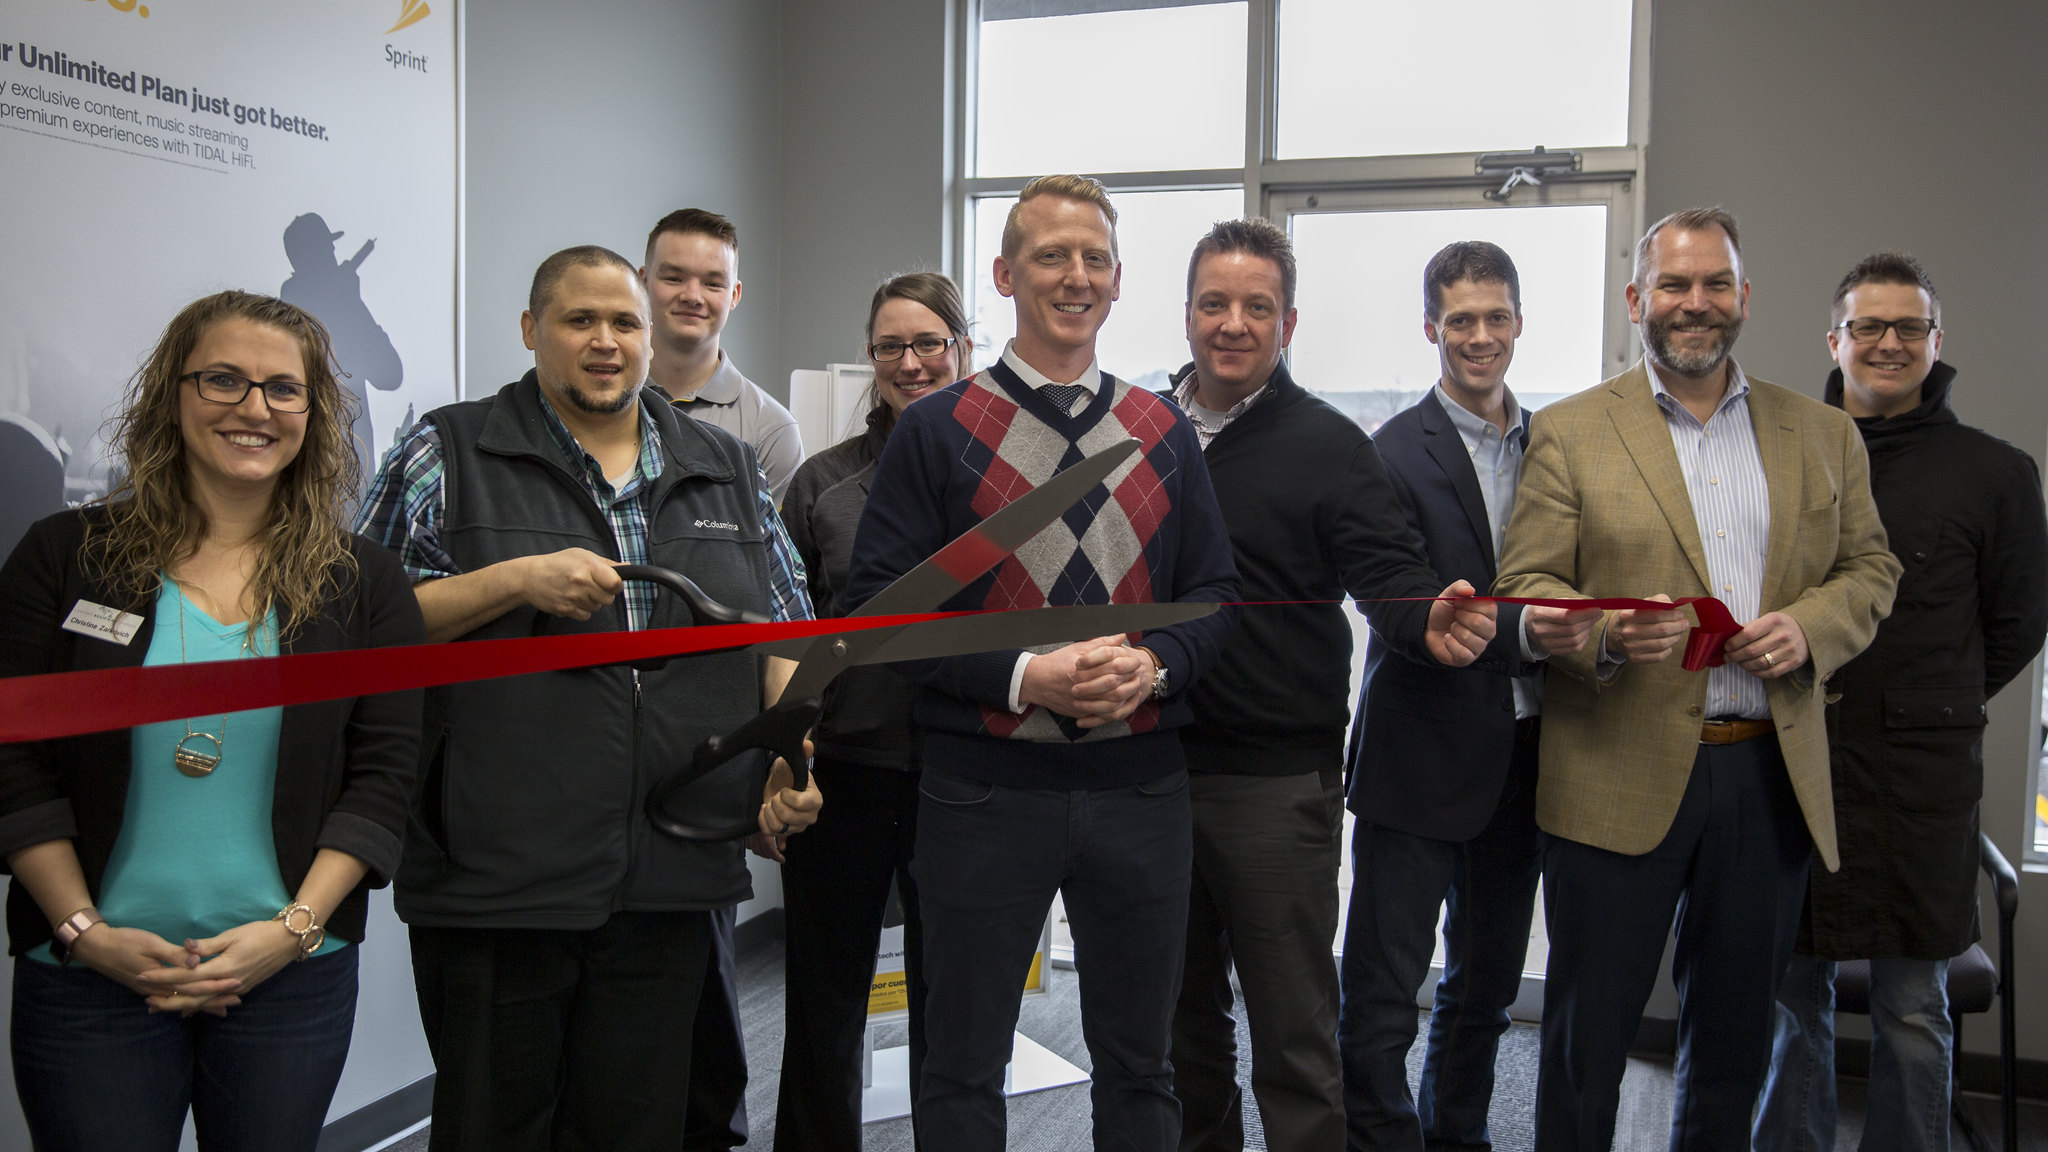 New Sprint Store Ribbon Cutting Celebration